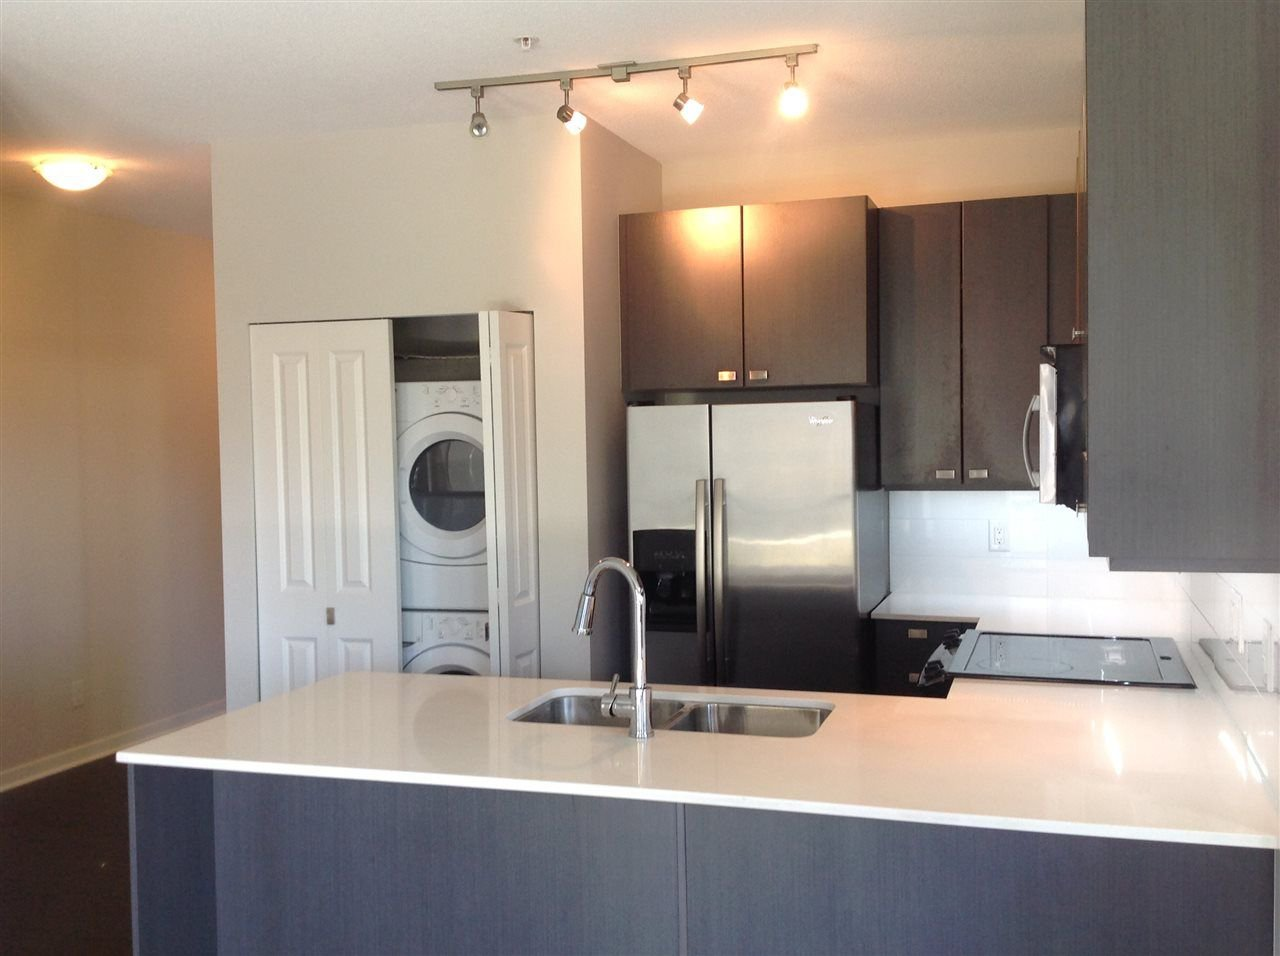 """Photo 4: Photos: 303 5655 210A Street in Langley: Salmon River Condo for sale in """"CORNERSTONE NORTH"""" : MLS®# R2267414"""